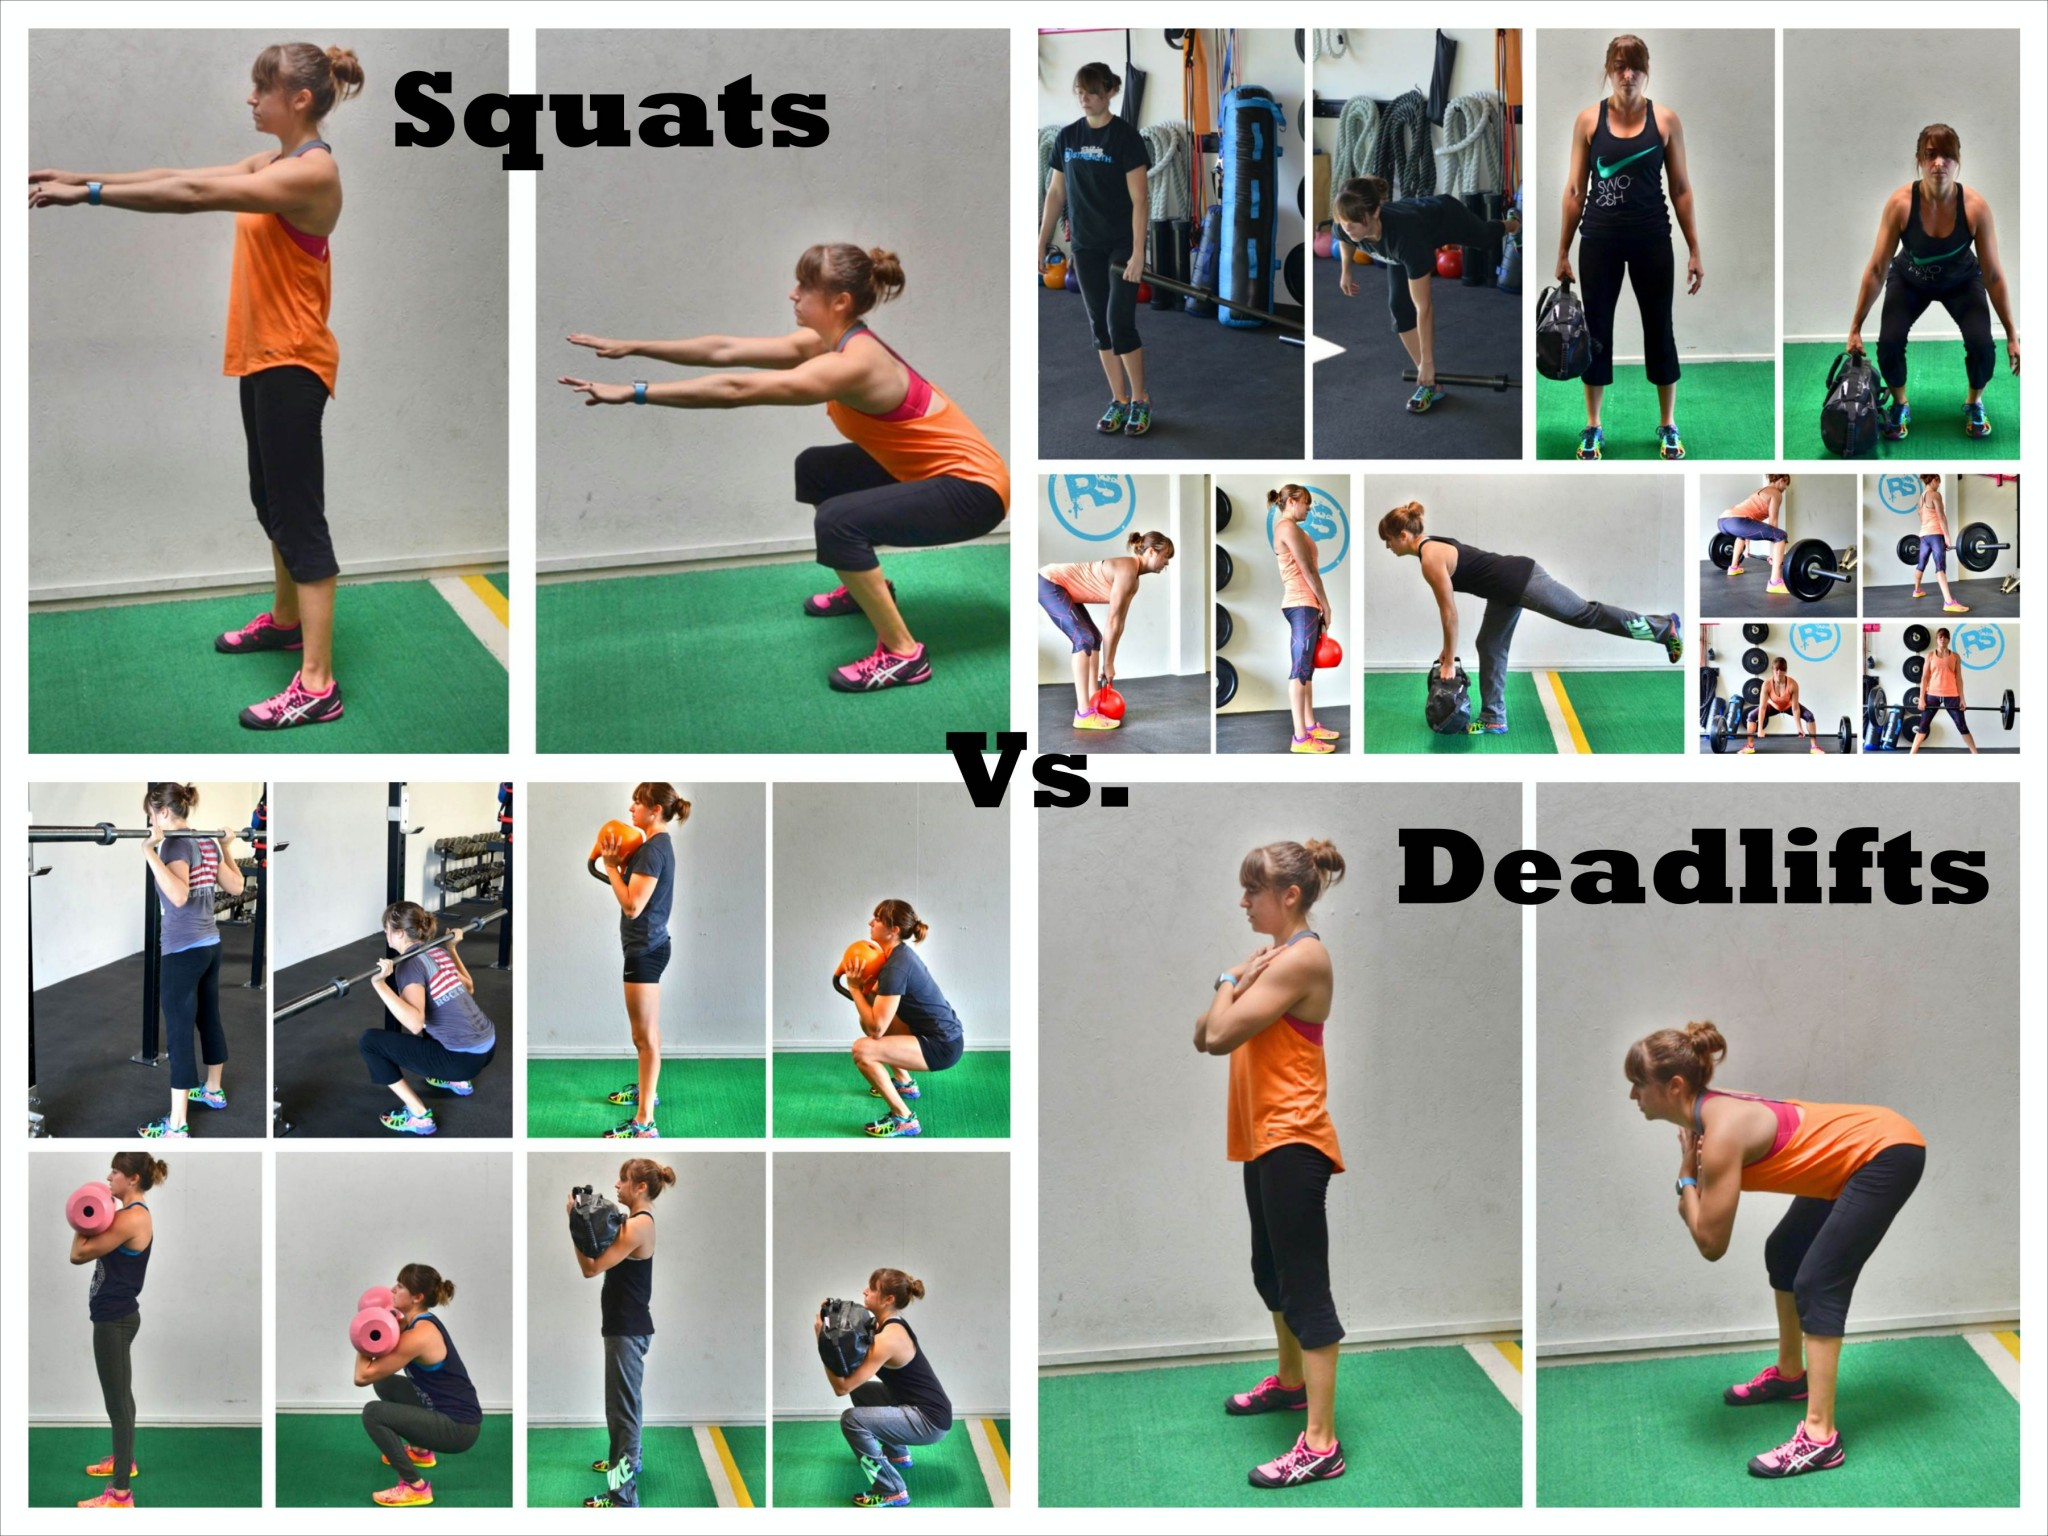 the difference between squats and deadlifts